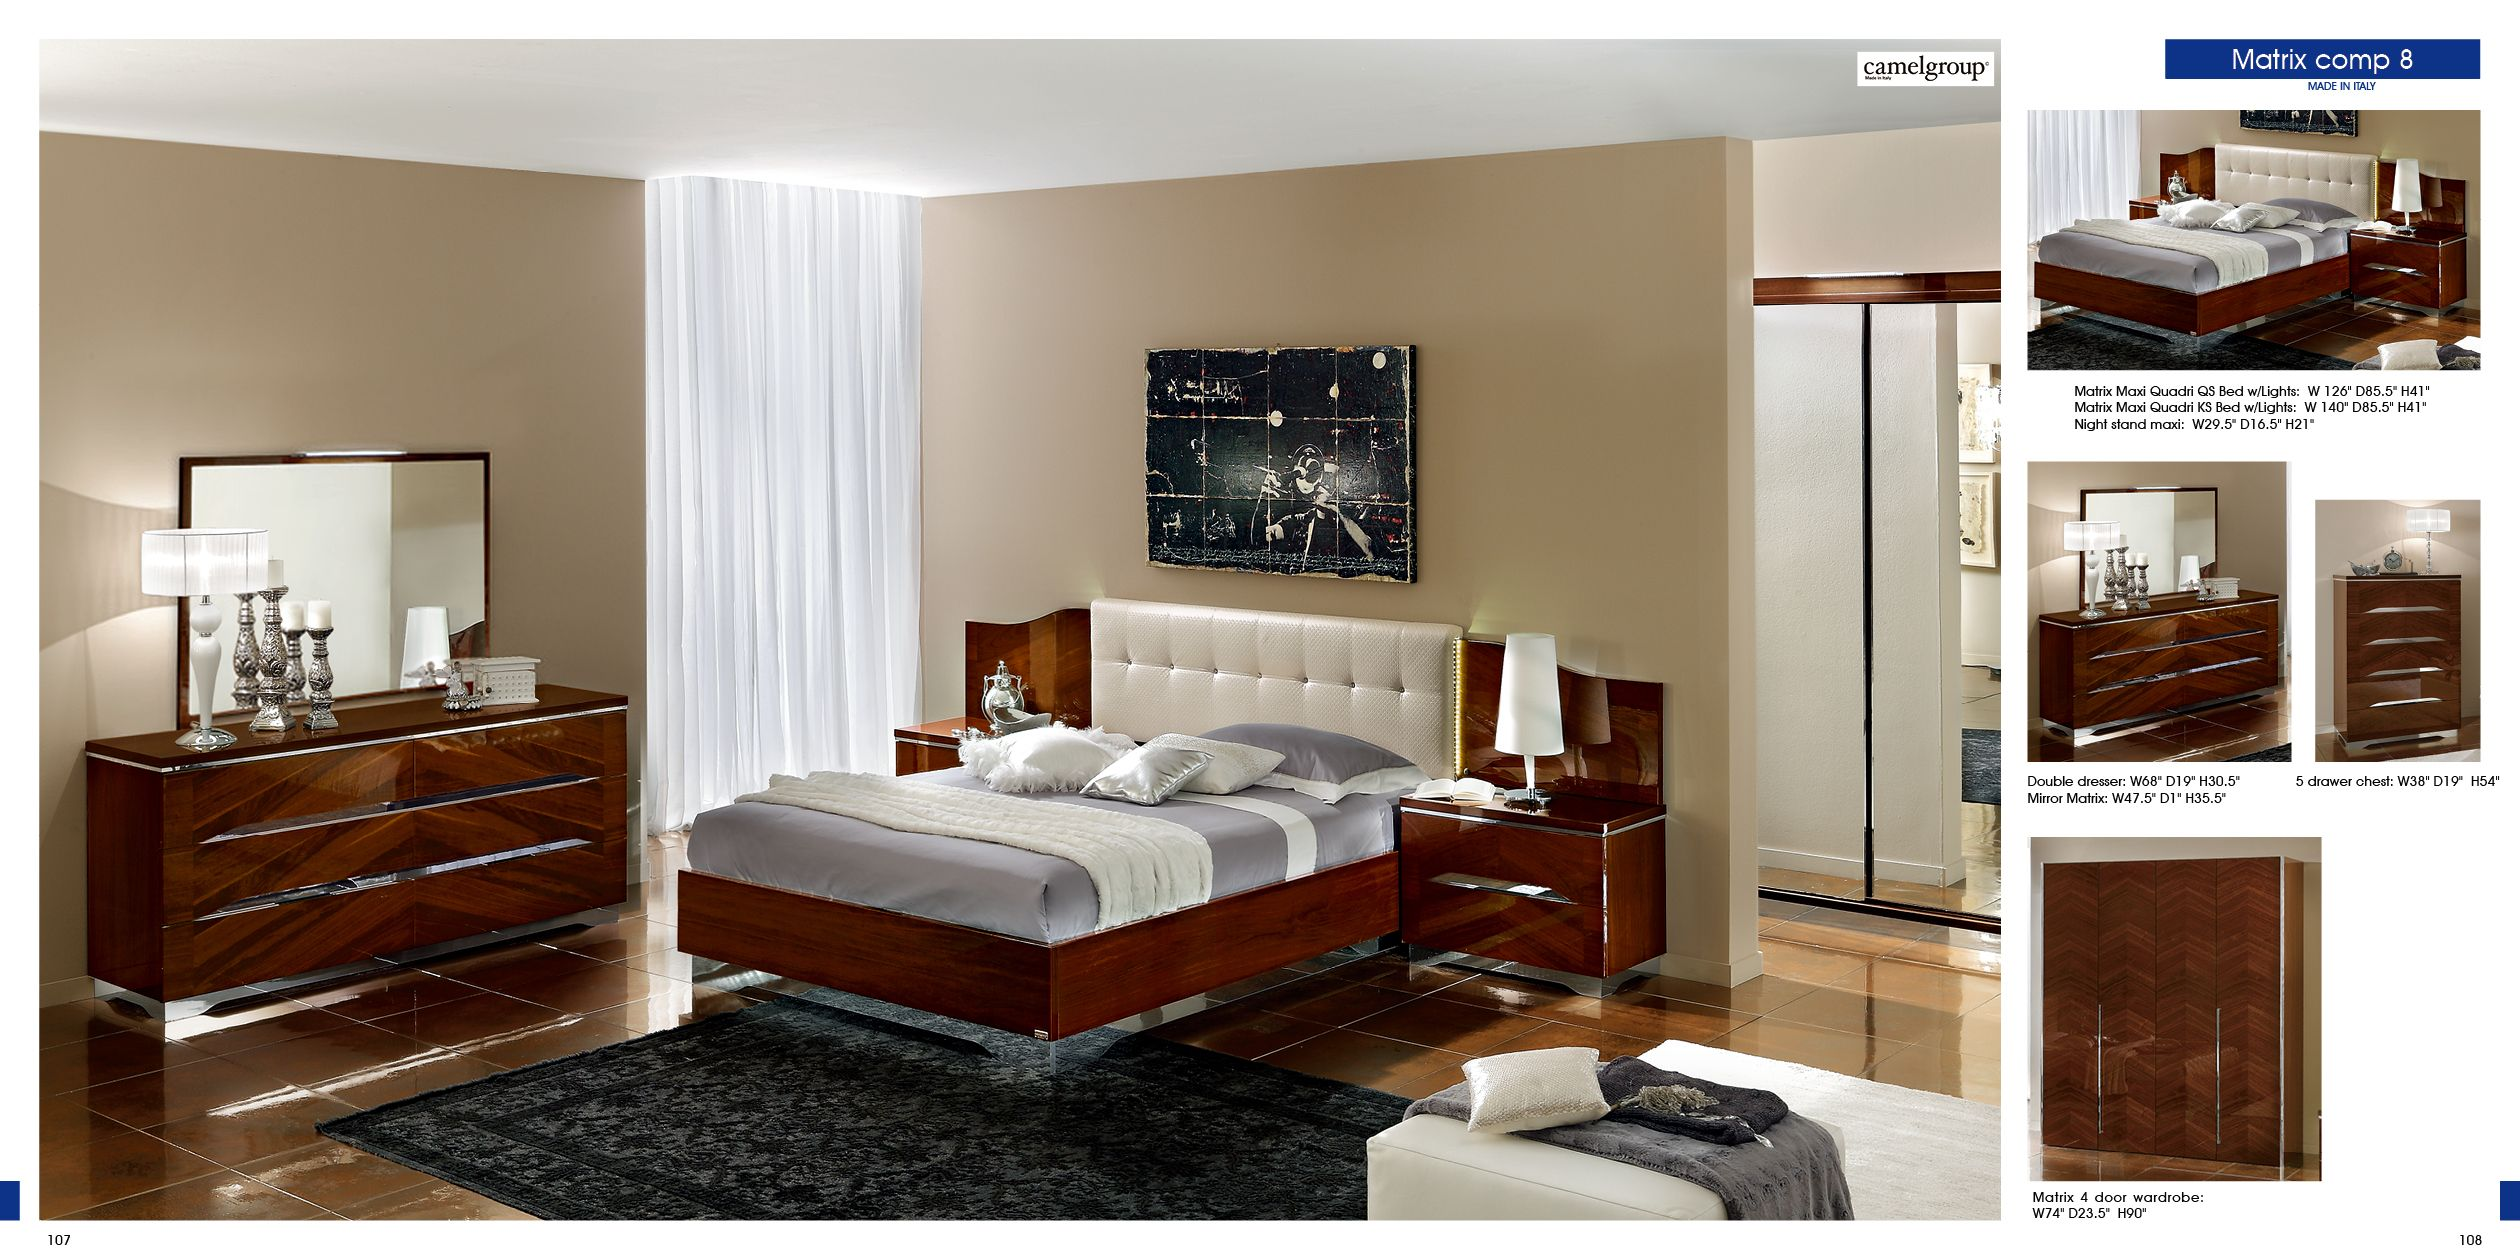 Contemporary Bedroom Furniture Designs Fascinating Matrix Composition 8 Wwhite Headboard Camelgroup Italy This Inspiration Design